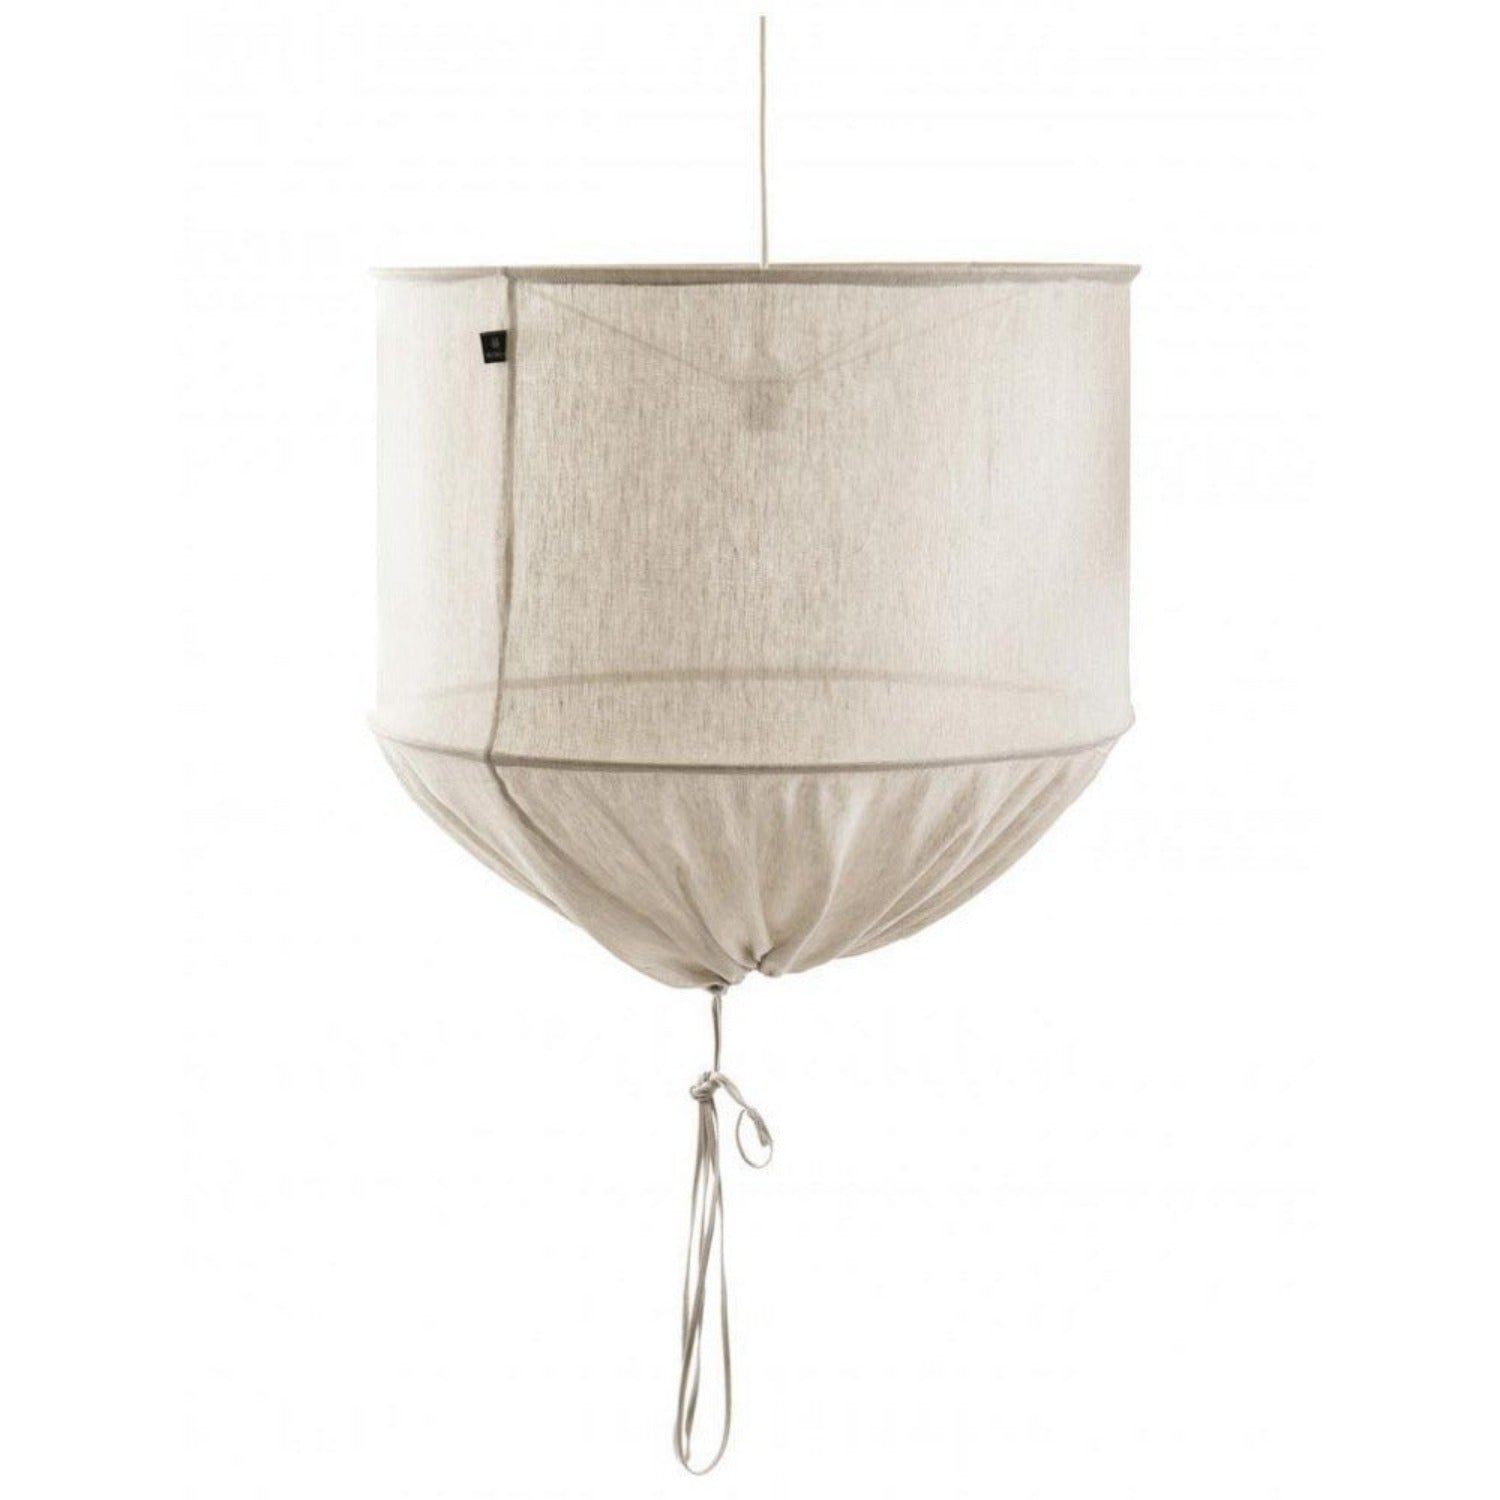 Varmland Linen Light Short-Eleish Van Breems Home